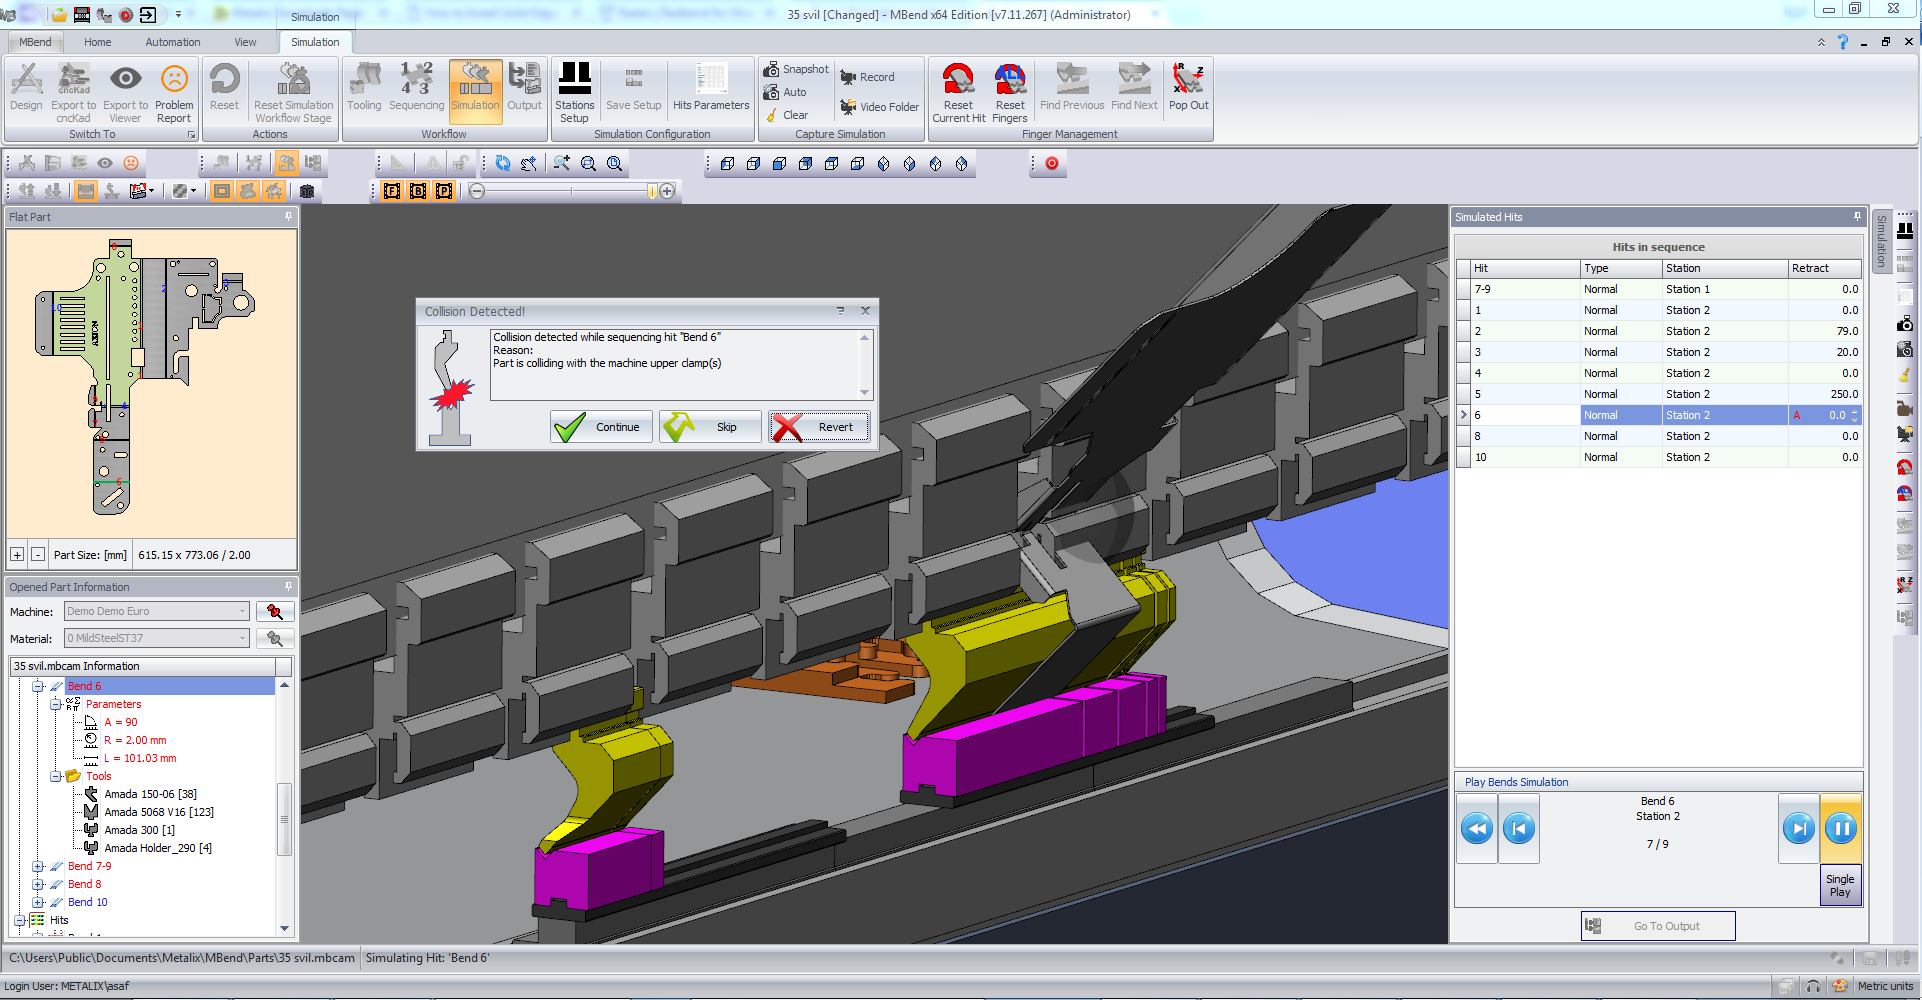 Simulating bends: MBend collision testing for all machine parts